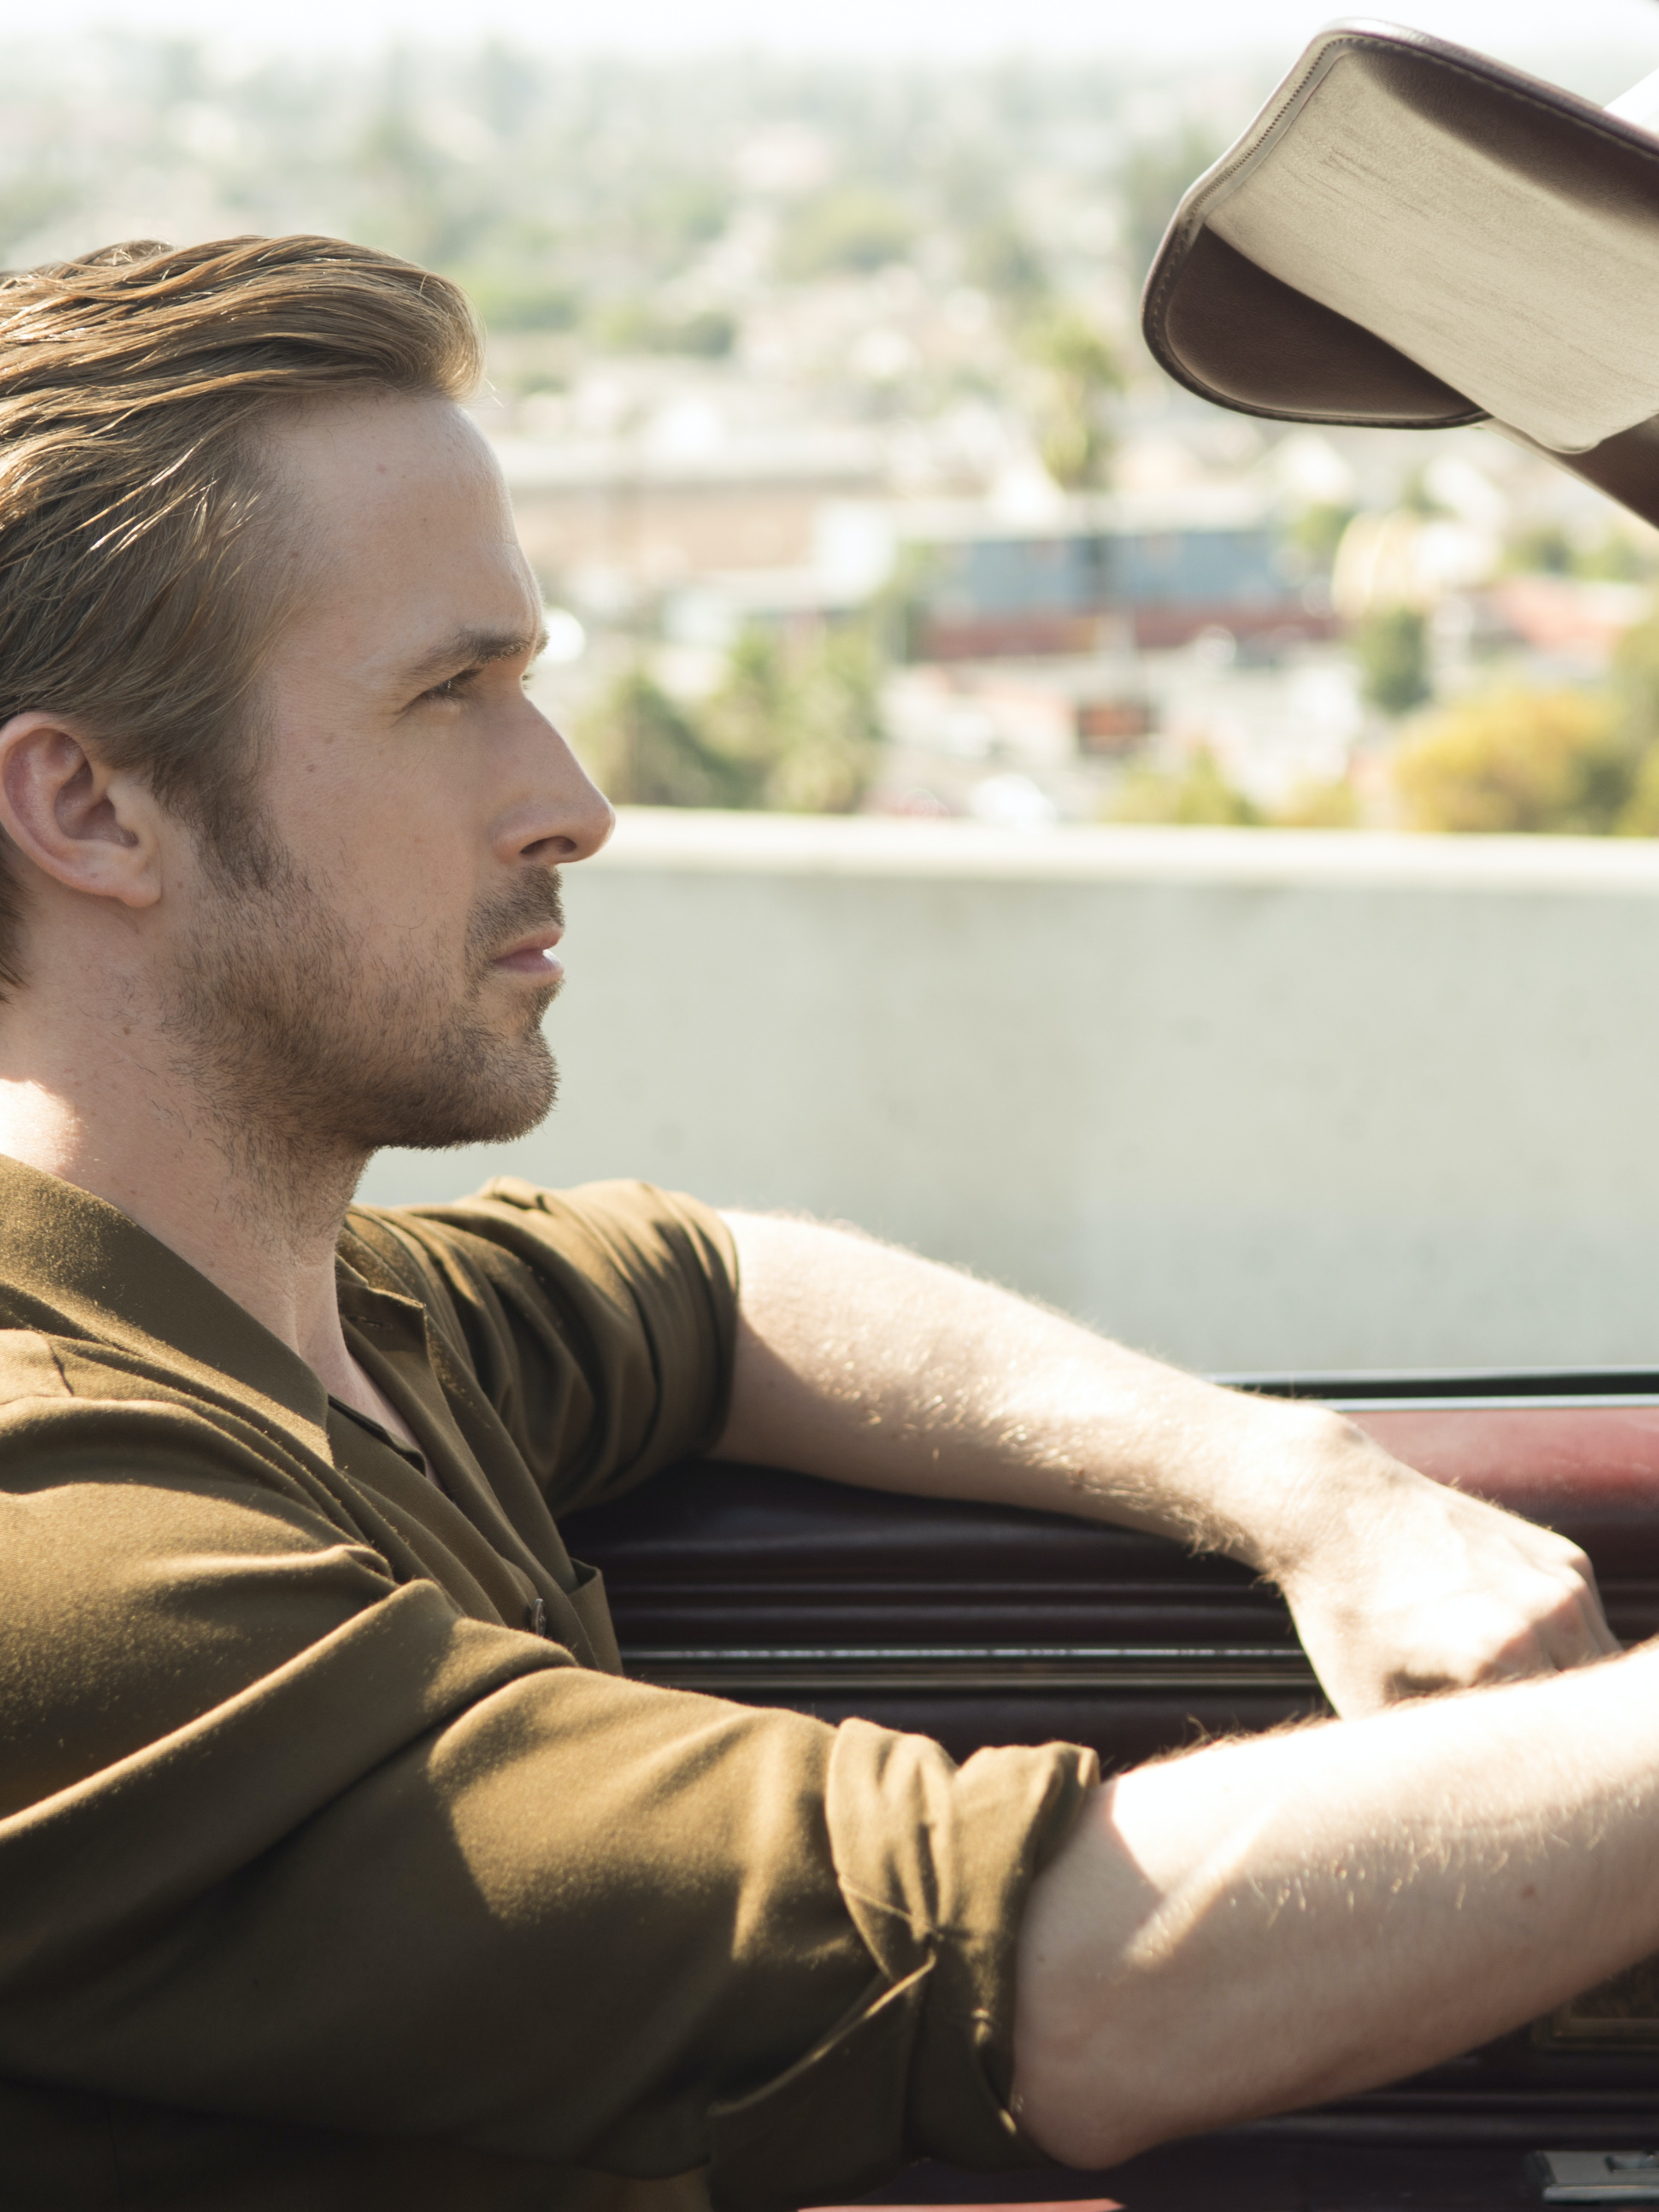 Ryan Gosling's Character drives a Buick Riviera 1982 that has terrible safety ratings and an absolutely atrocious engine because he's a pretentious ass.